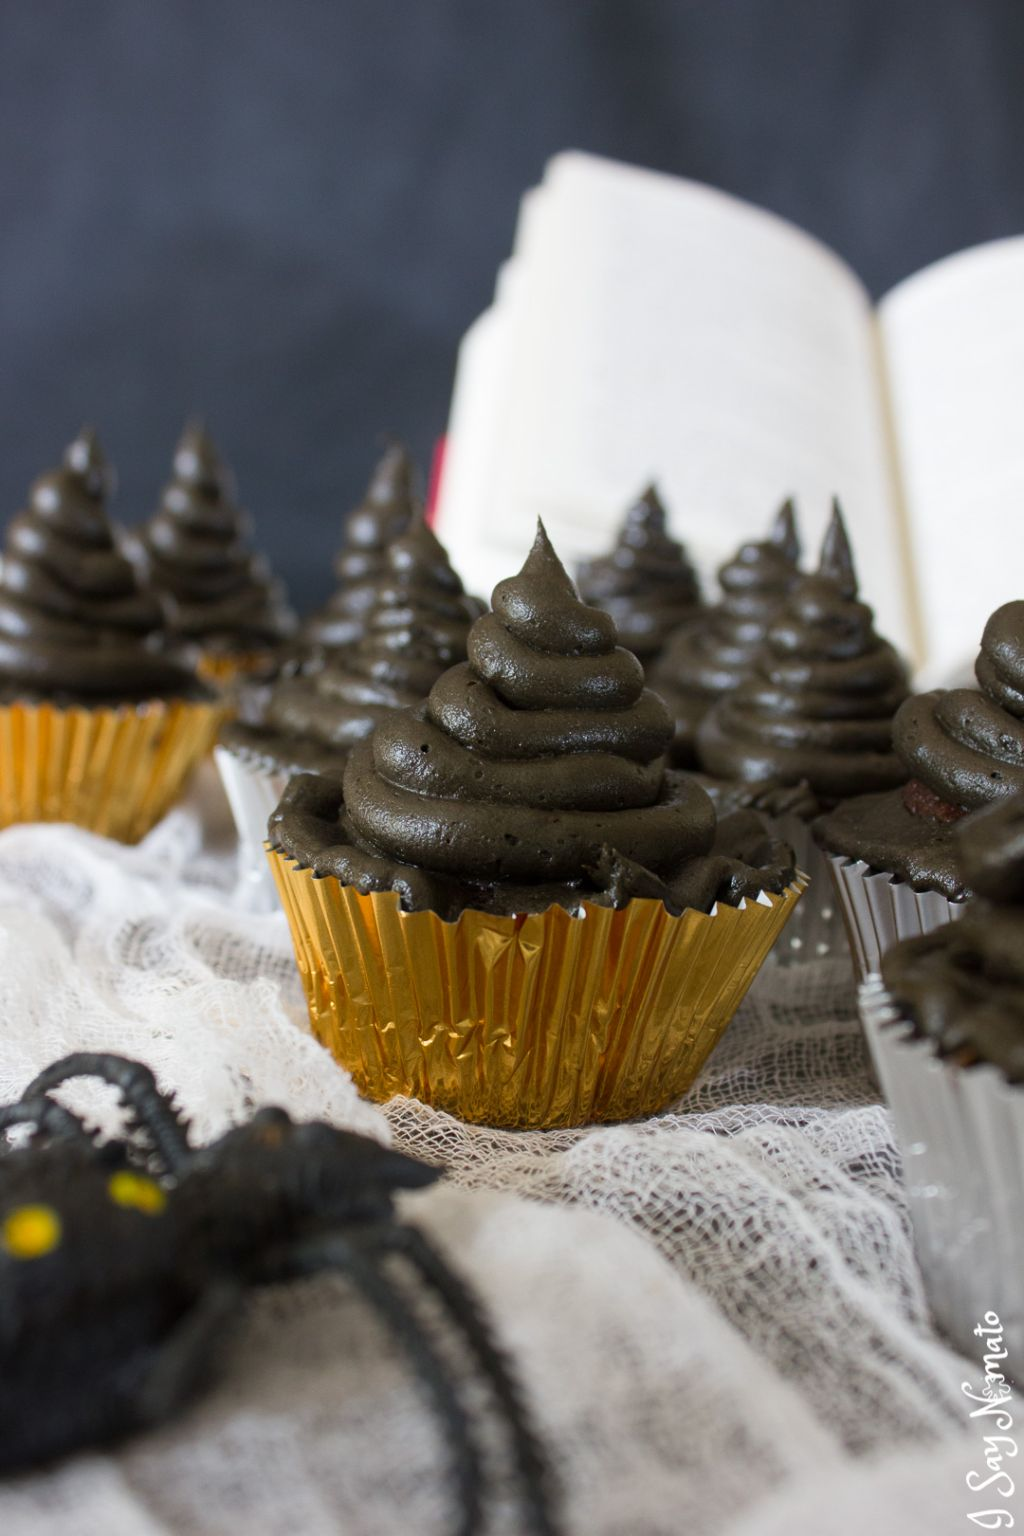 Harry Potter Inspired Sorting Hat Cupcakes - I Say Nomato